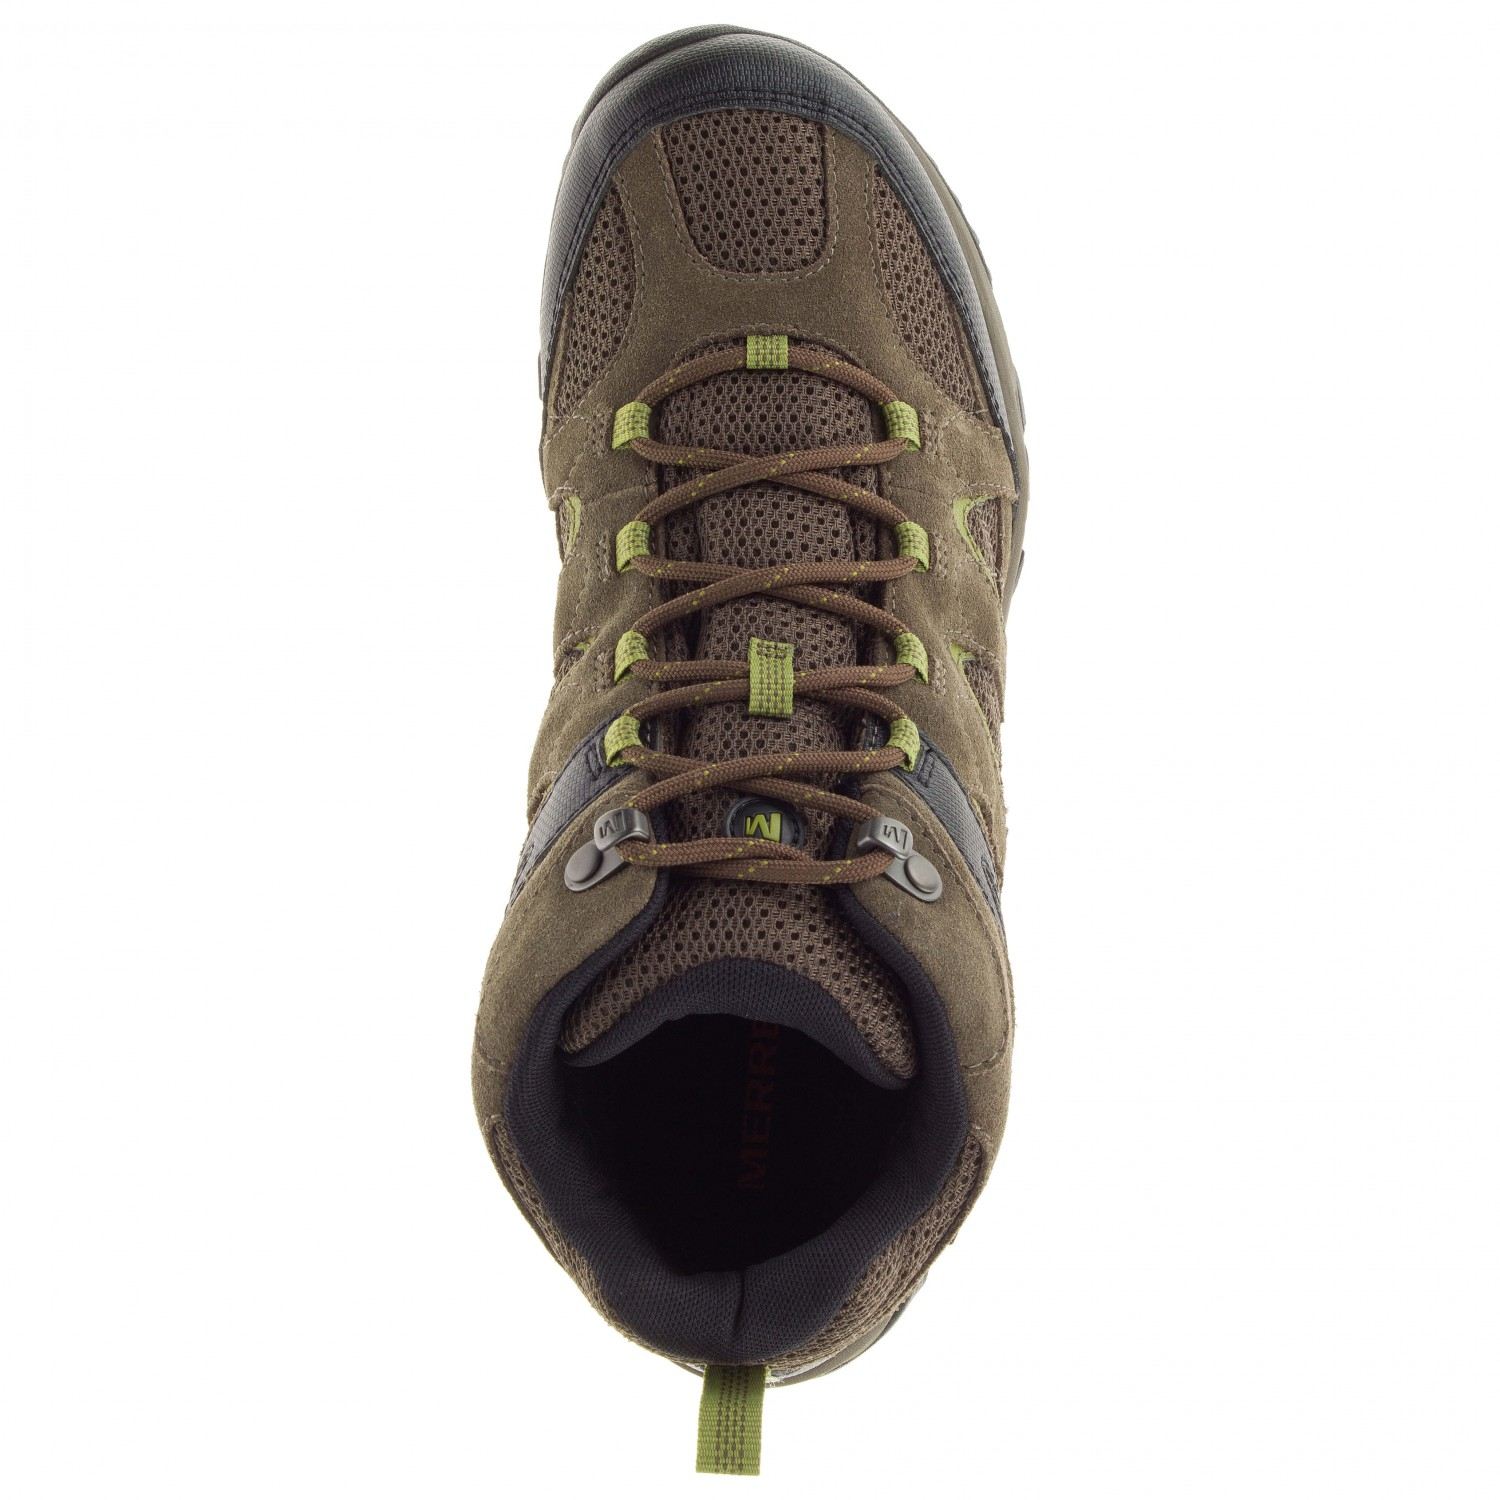 ... Merrell - Outmost Mid Vent GTX - Walking boots ... e3ce865530